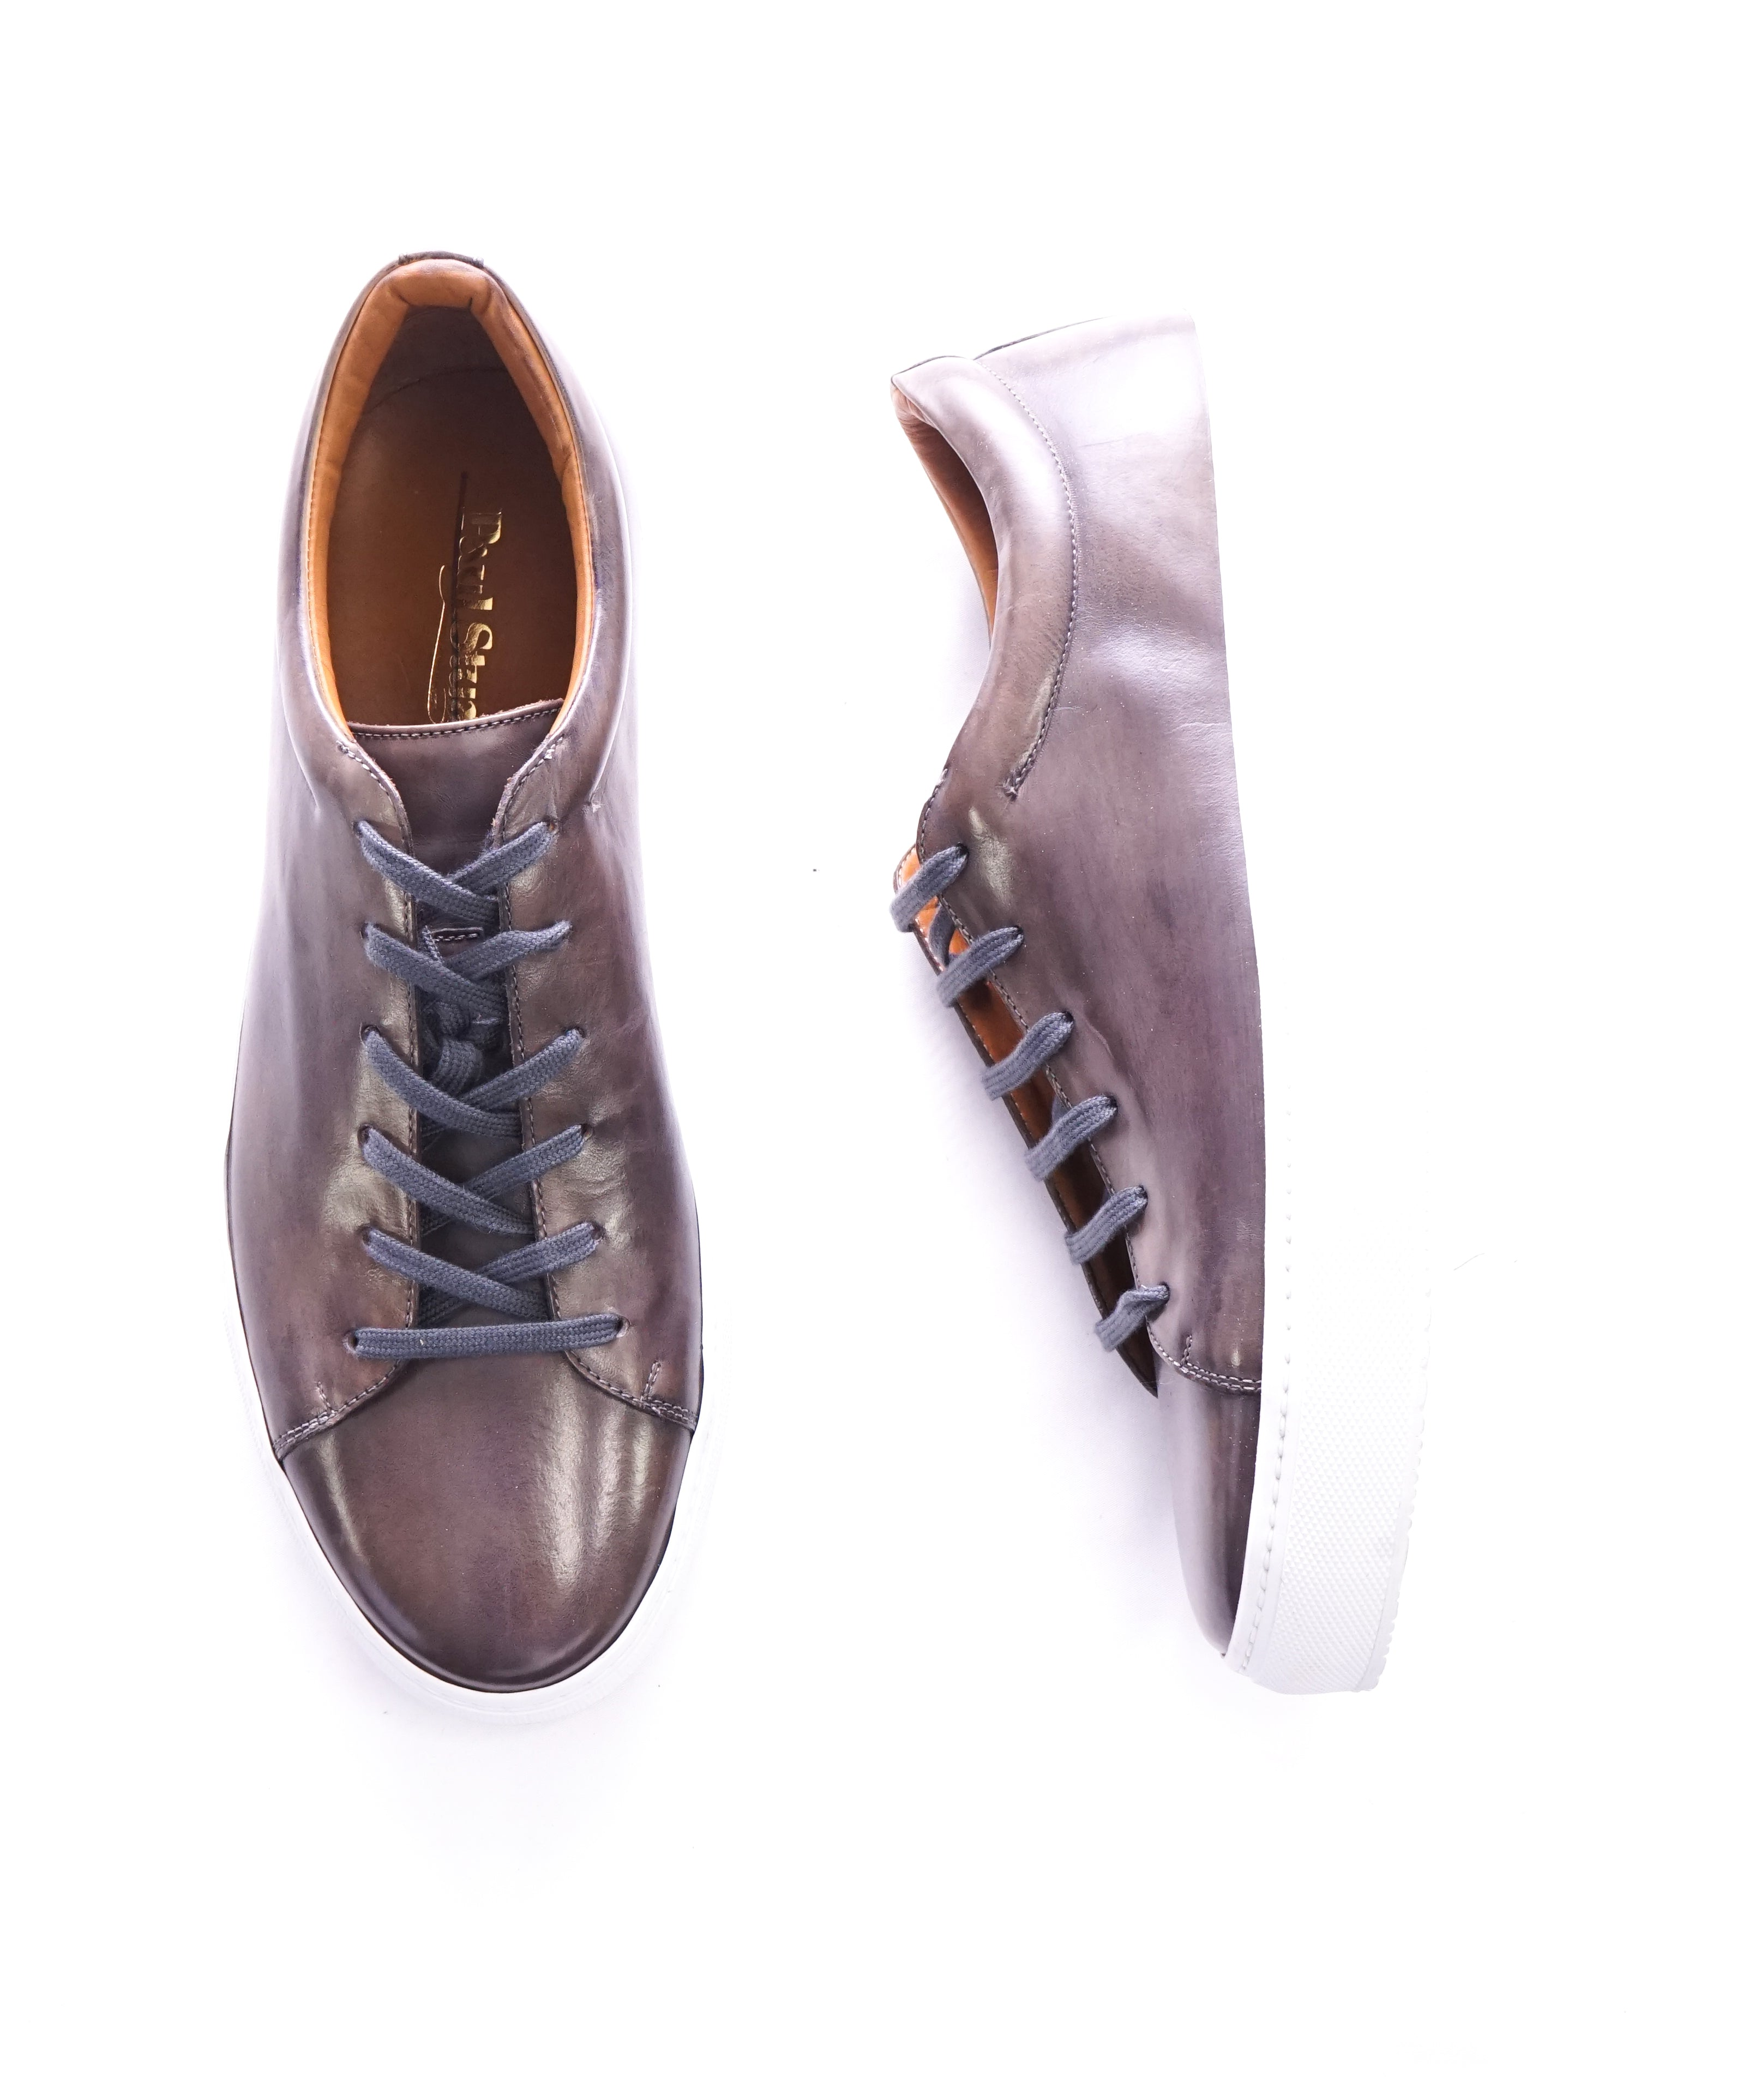 PAUL STUART - HAND MADE IN ITALY Patina Premium Leather Sneakers - 10.5